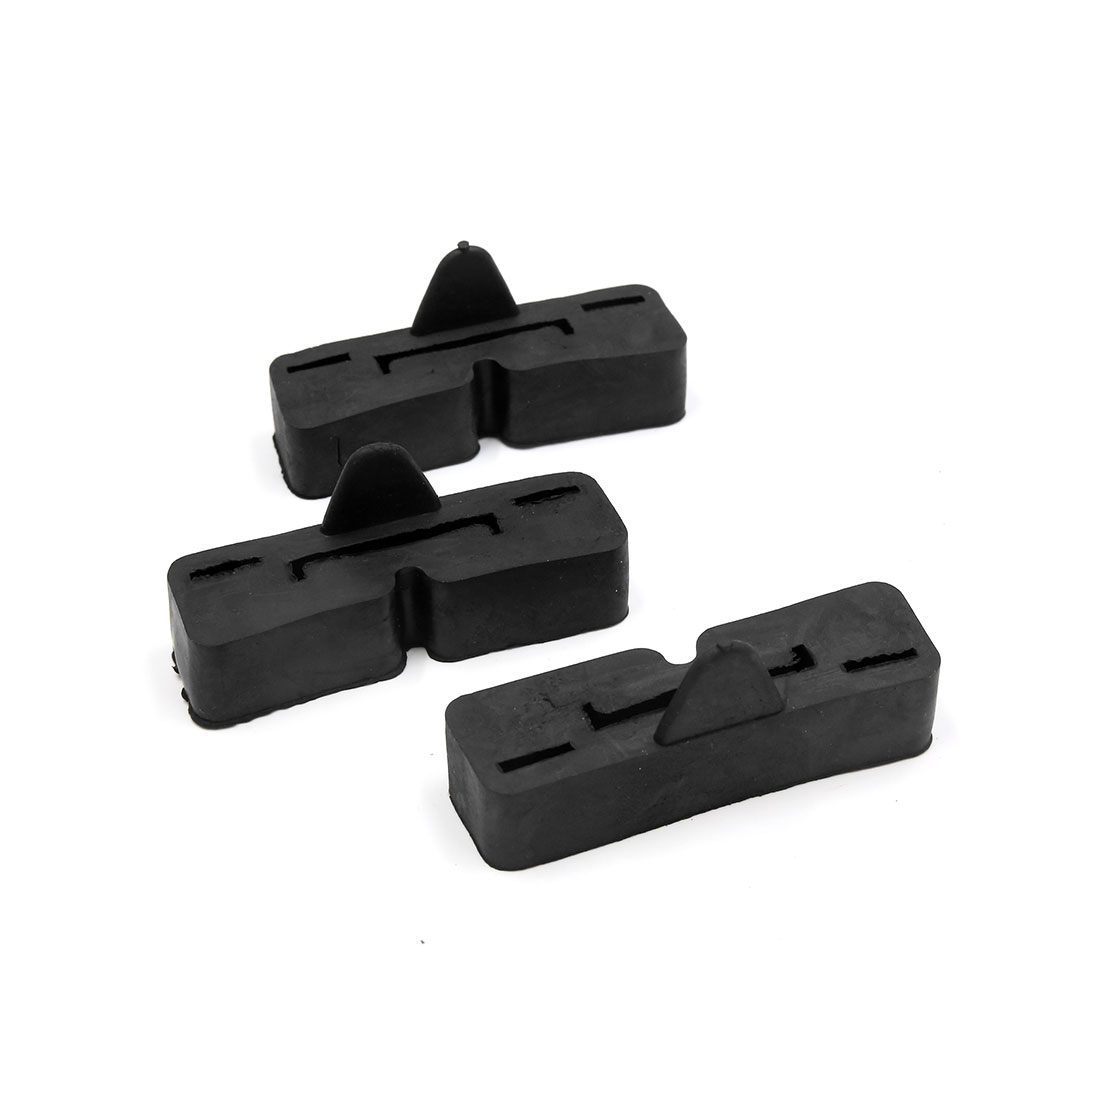 3 Pcs Black Motorcycle Petrol Gas Oil Fuel Tank Mount Rubber Holder for ZJ127